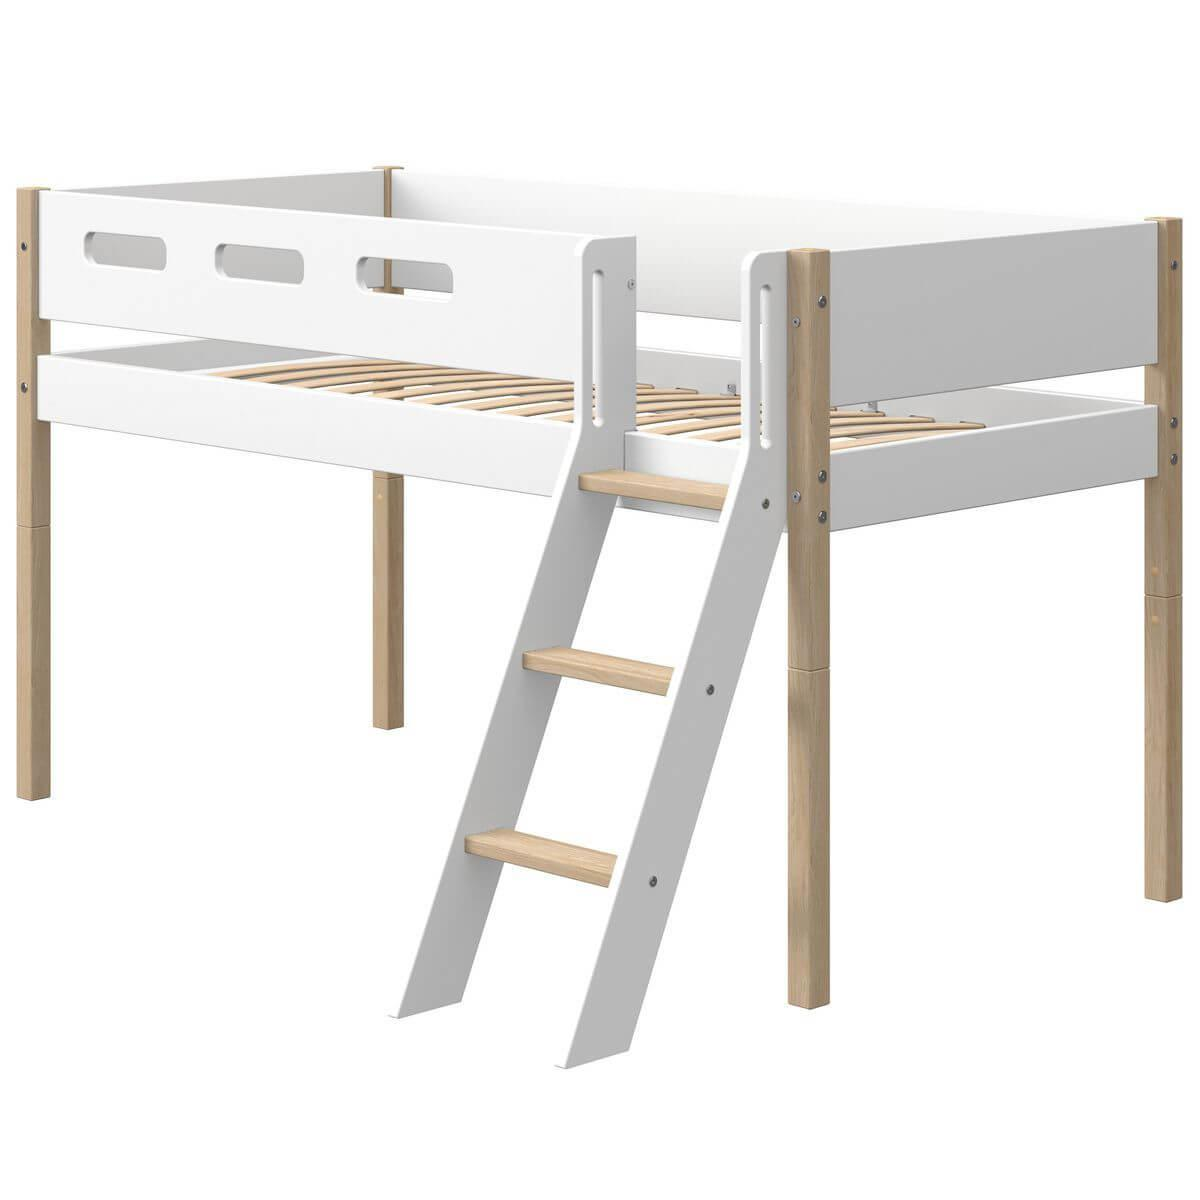 Cama media alta 90x190cm escalera inclinada NOR Flexa roble-blanco